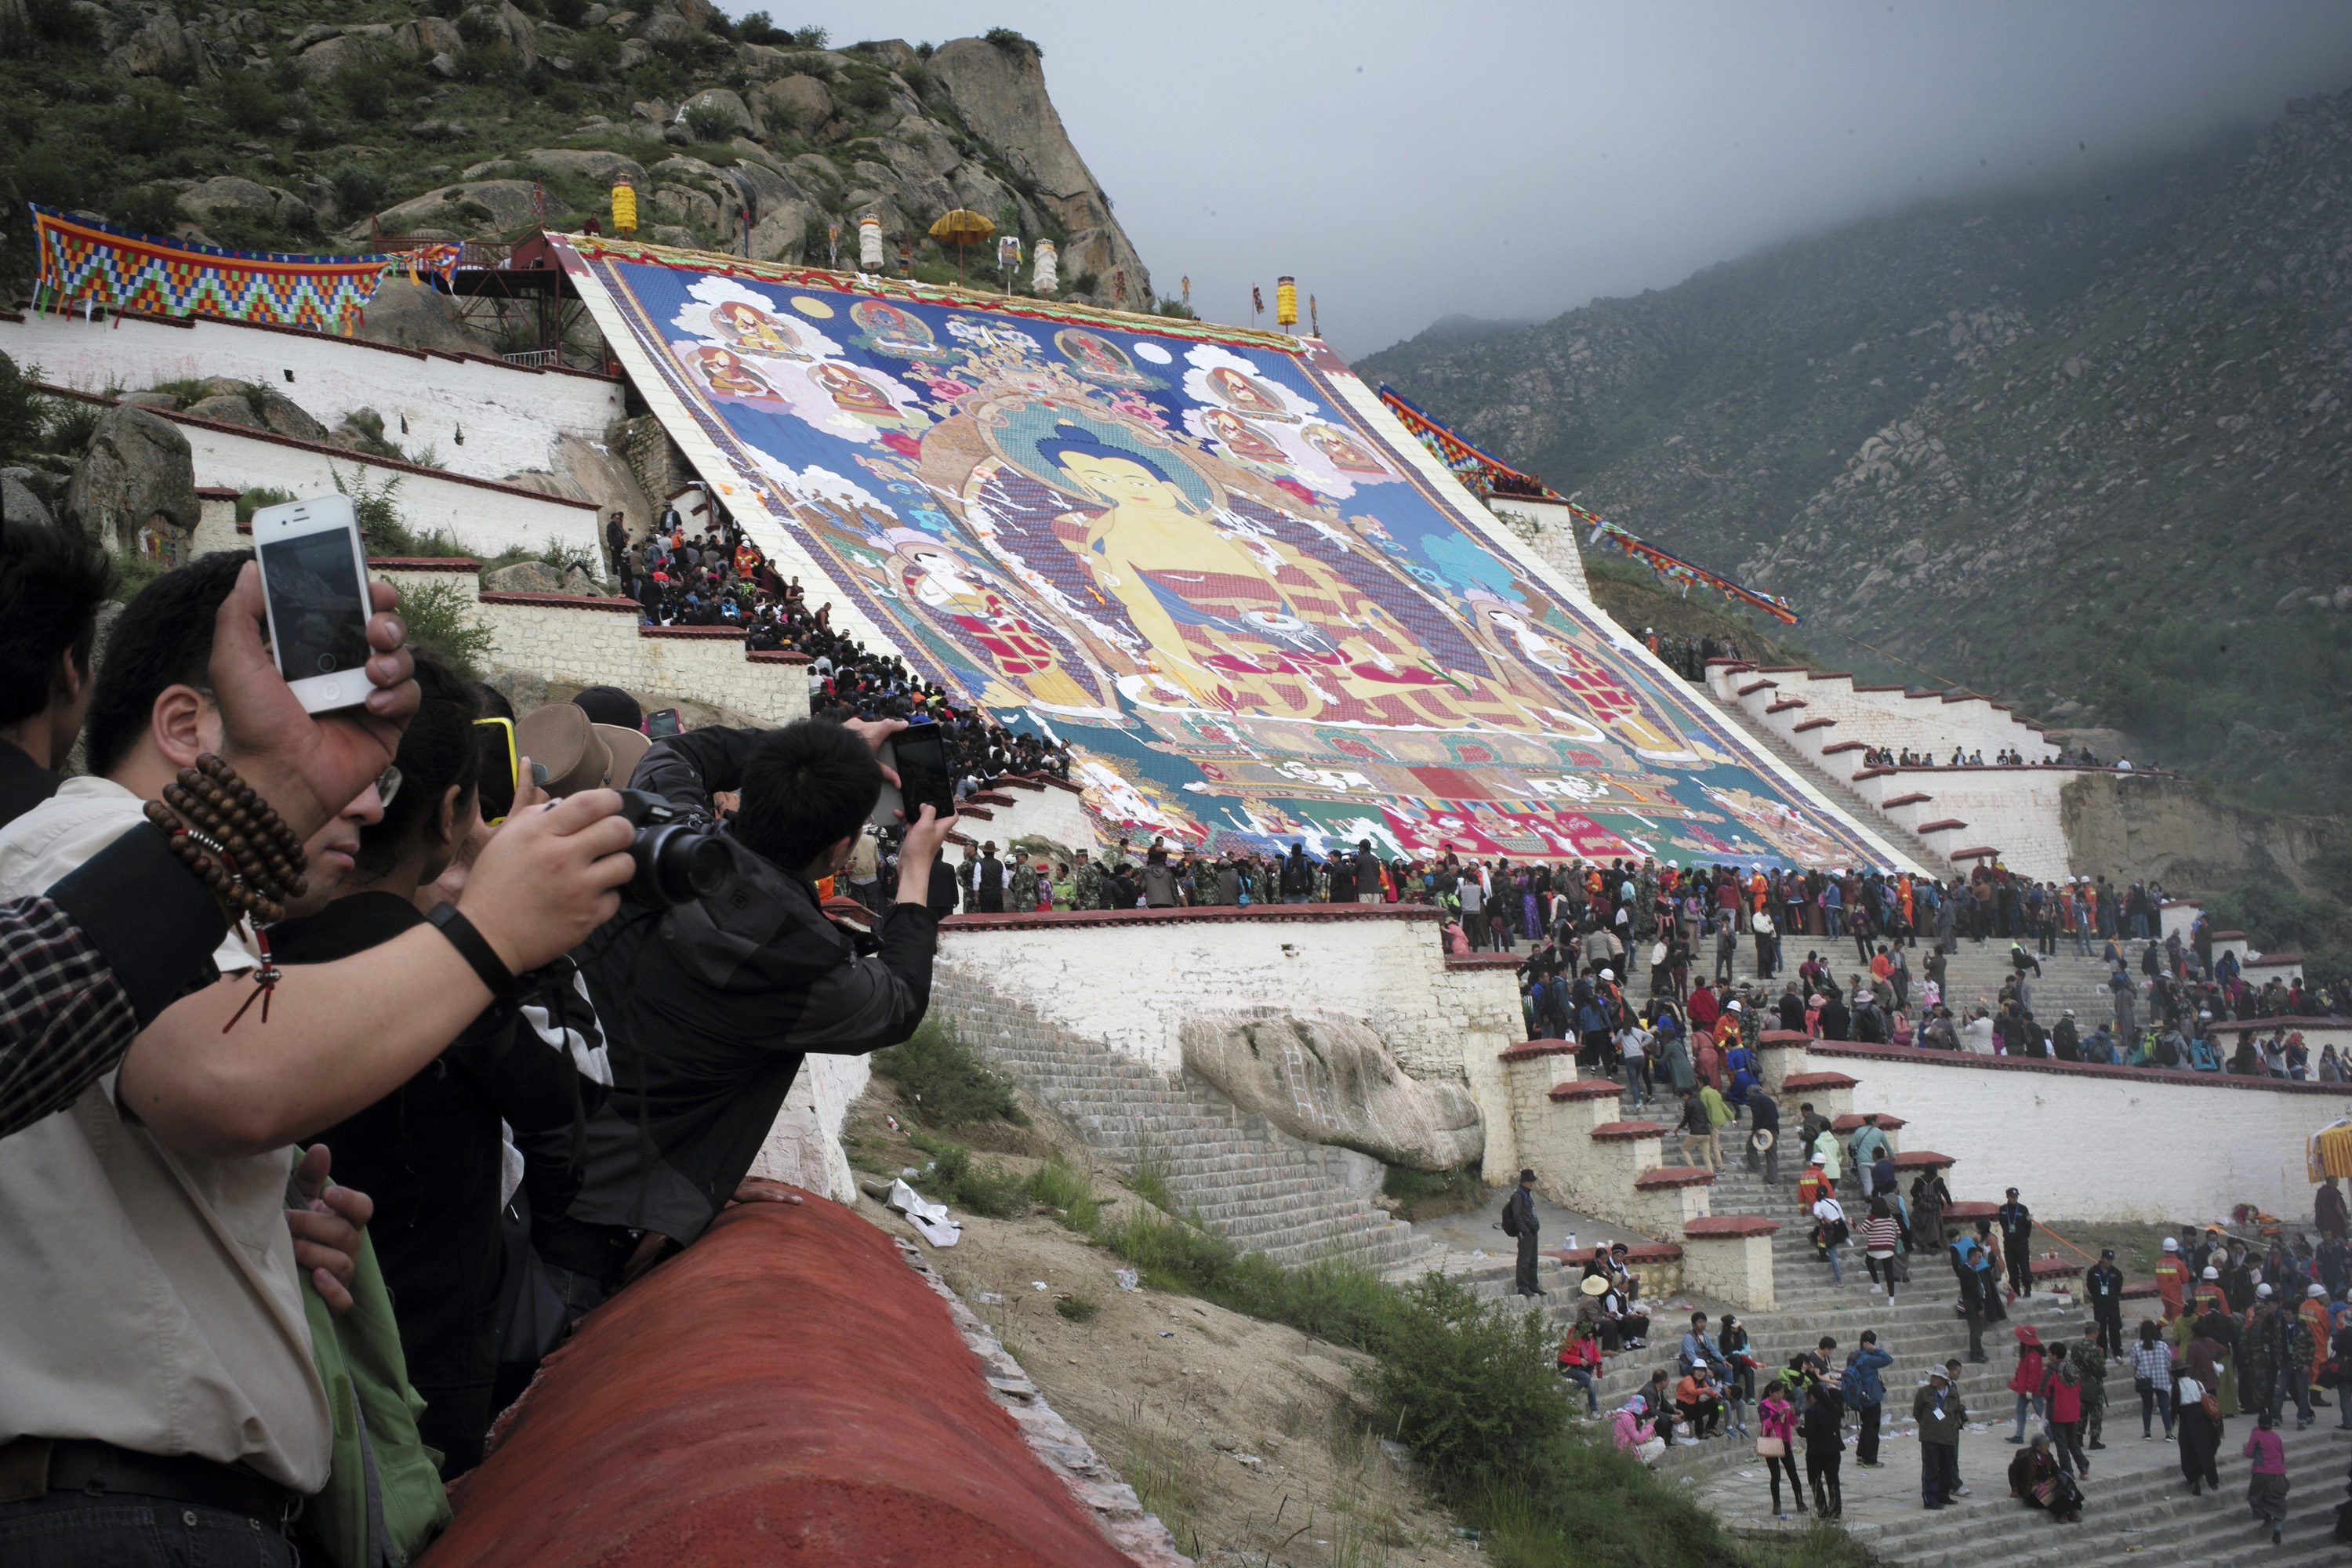 Tibetan Buddhists, tourists view a huge Thangka, a religious silk embroidery or painting displaying a Buddha portrait, during the Shoton Festival at Zhaibung Monastery in Lhasa, capital of southwest China's Tibet Autonomous Region, Aug. 25, 2014.